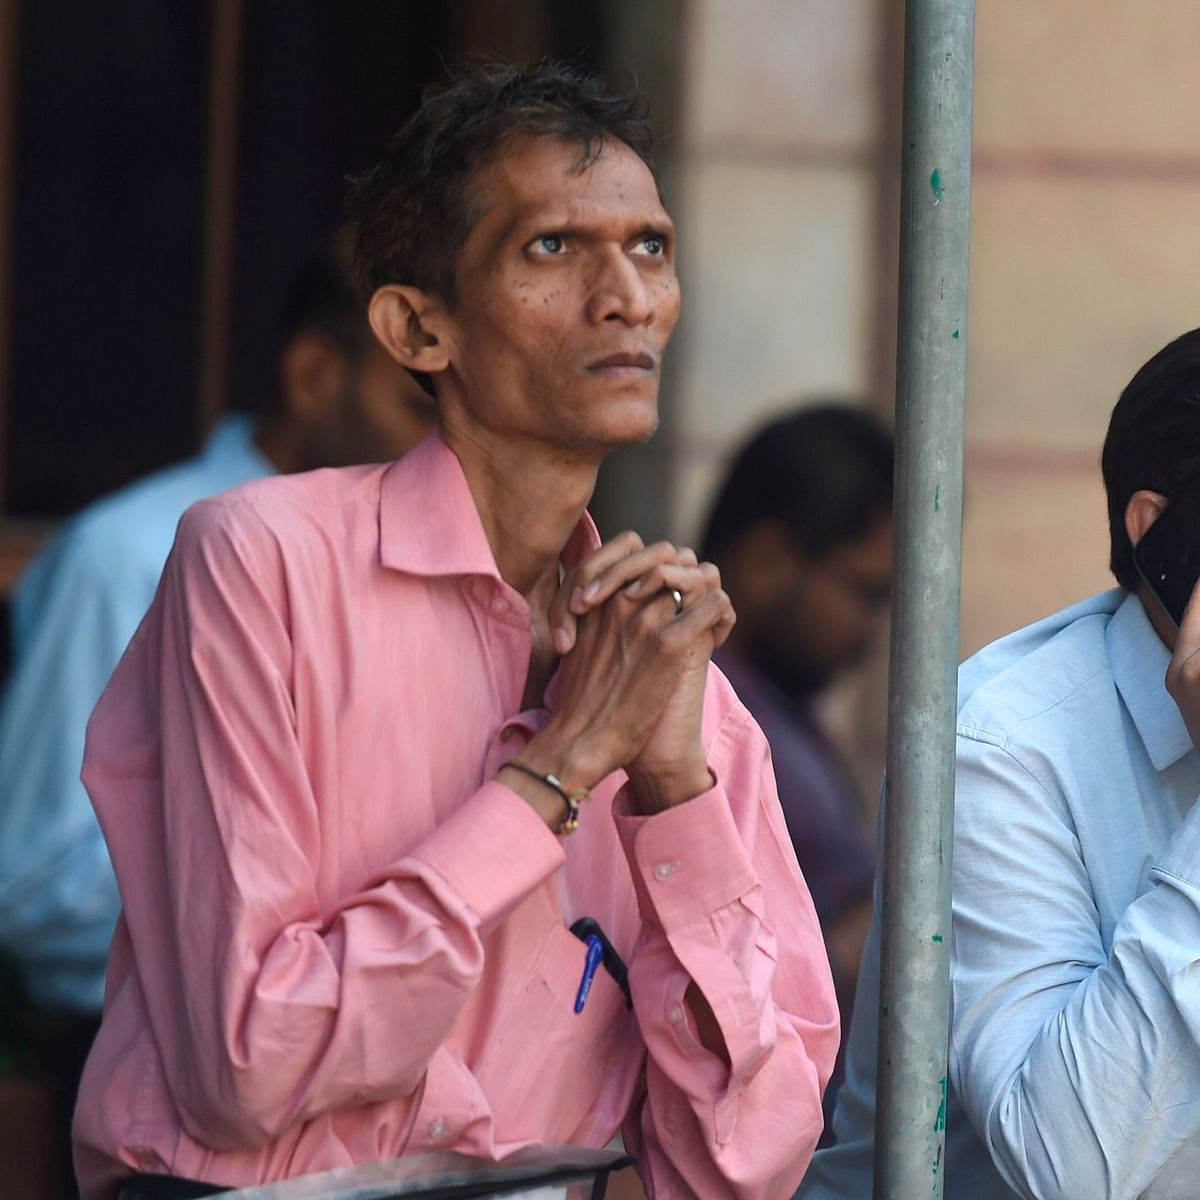 Sensex drops over 200 points in early trade; Nifty below 14,550